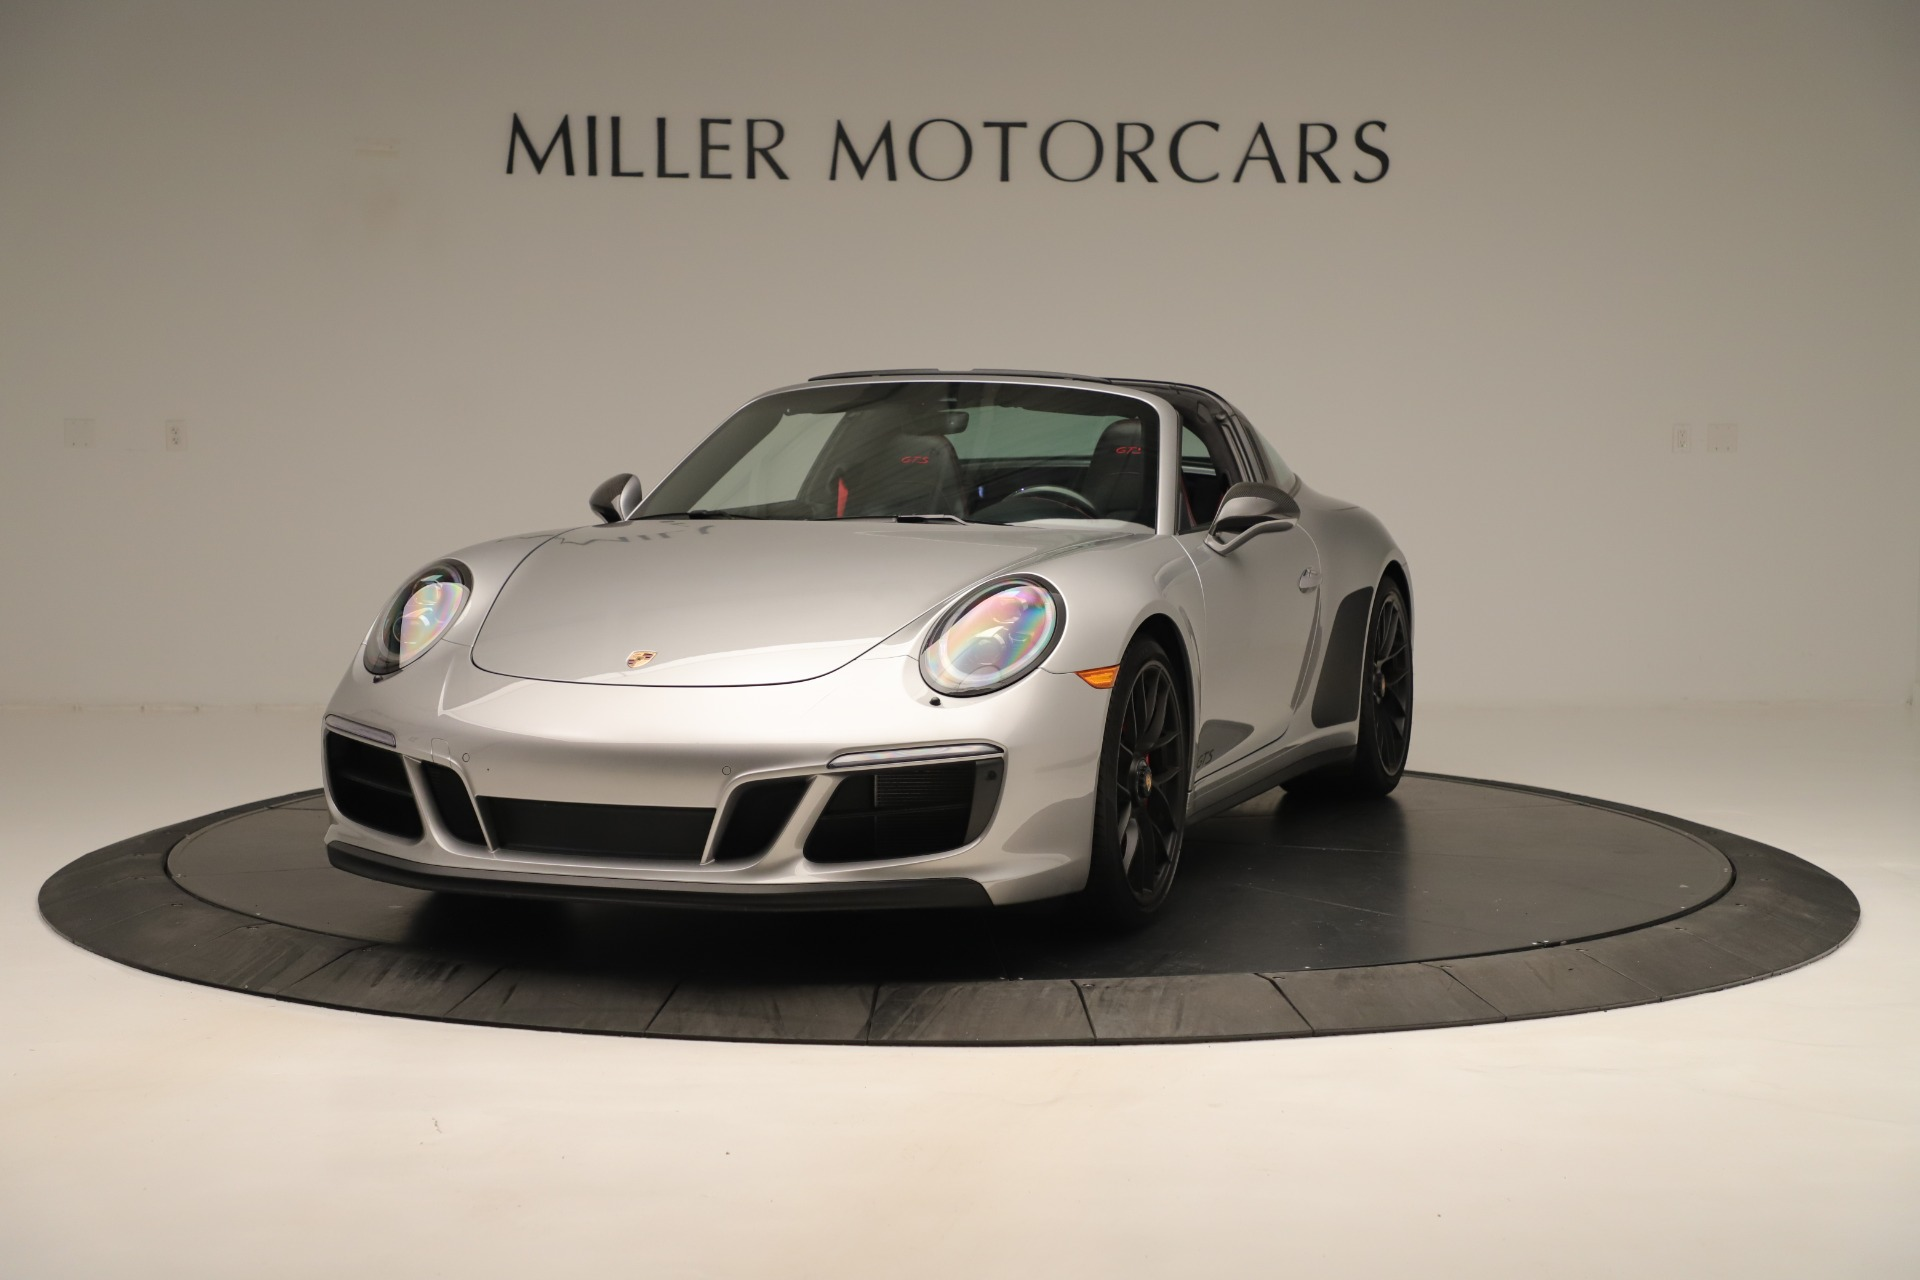 Used 2017 Porsche 911 Targa 4 GTS for sale Sold at Alfa Romeo of Greenwich in Greenwich CT 06830 1